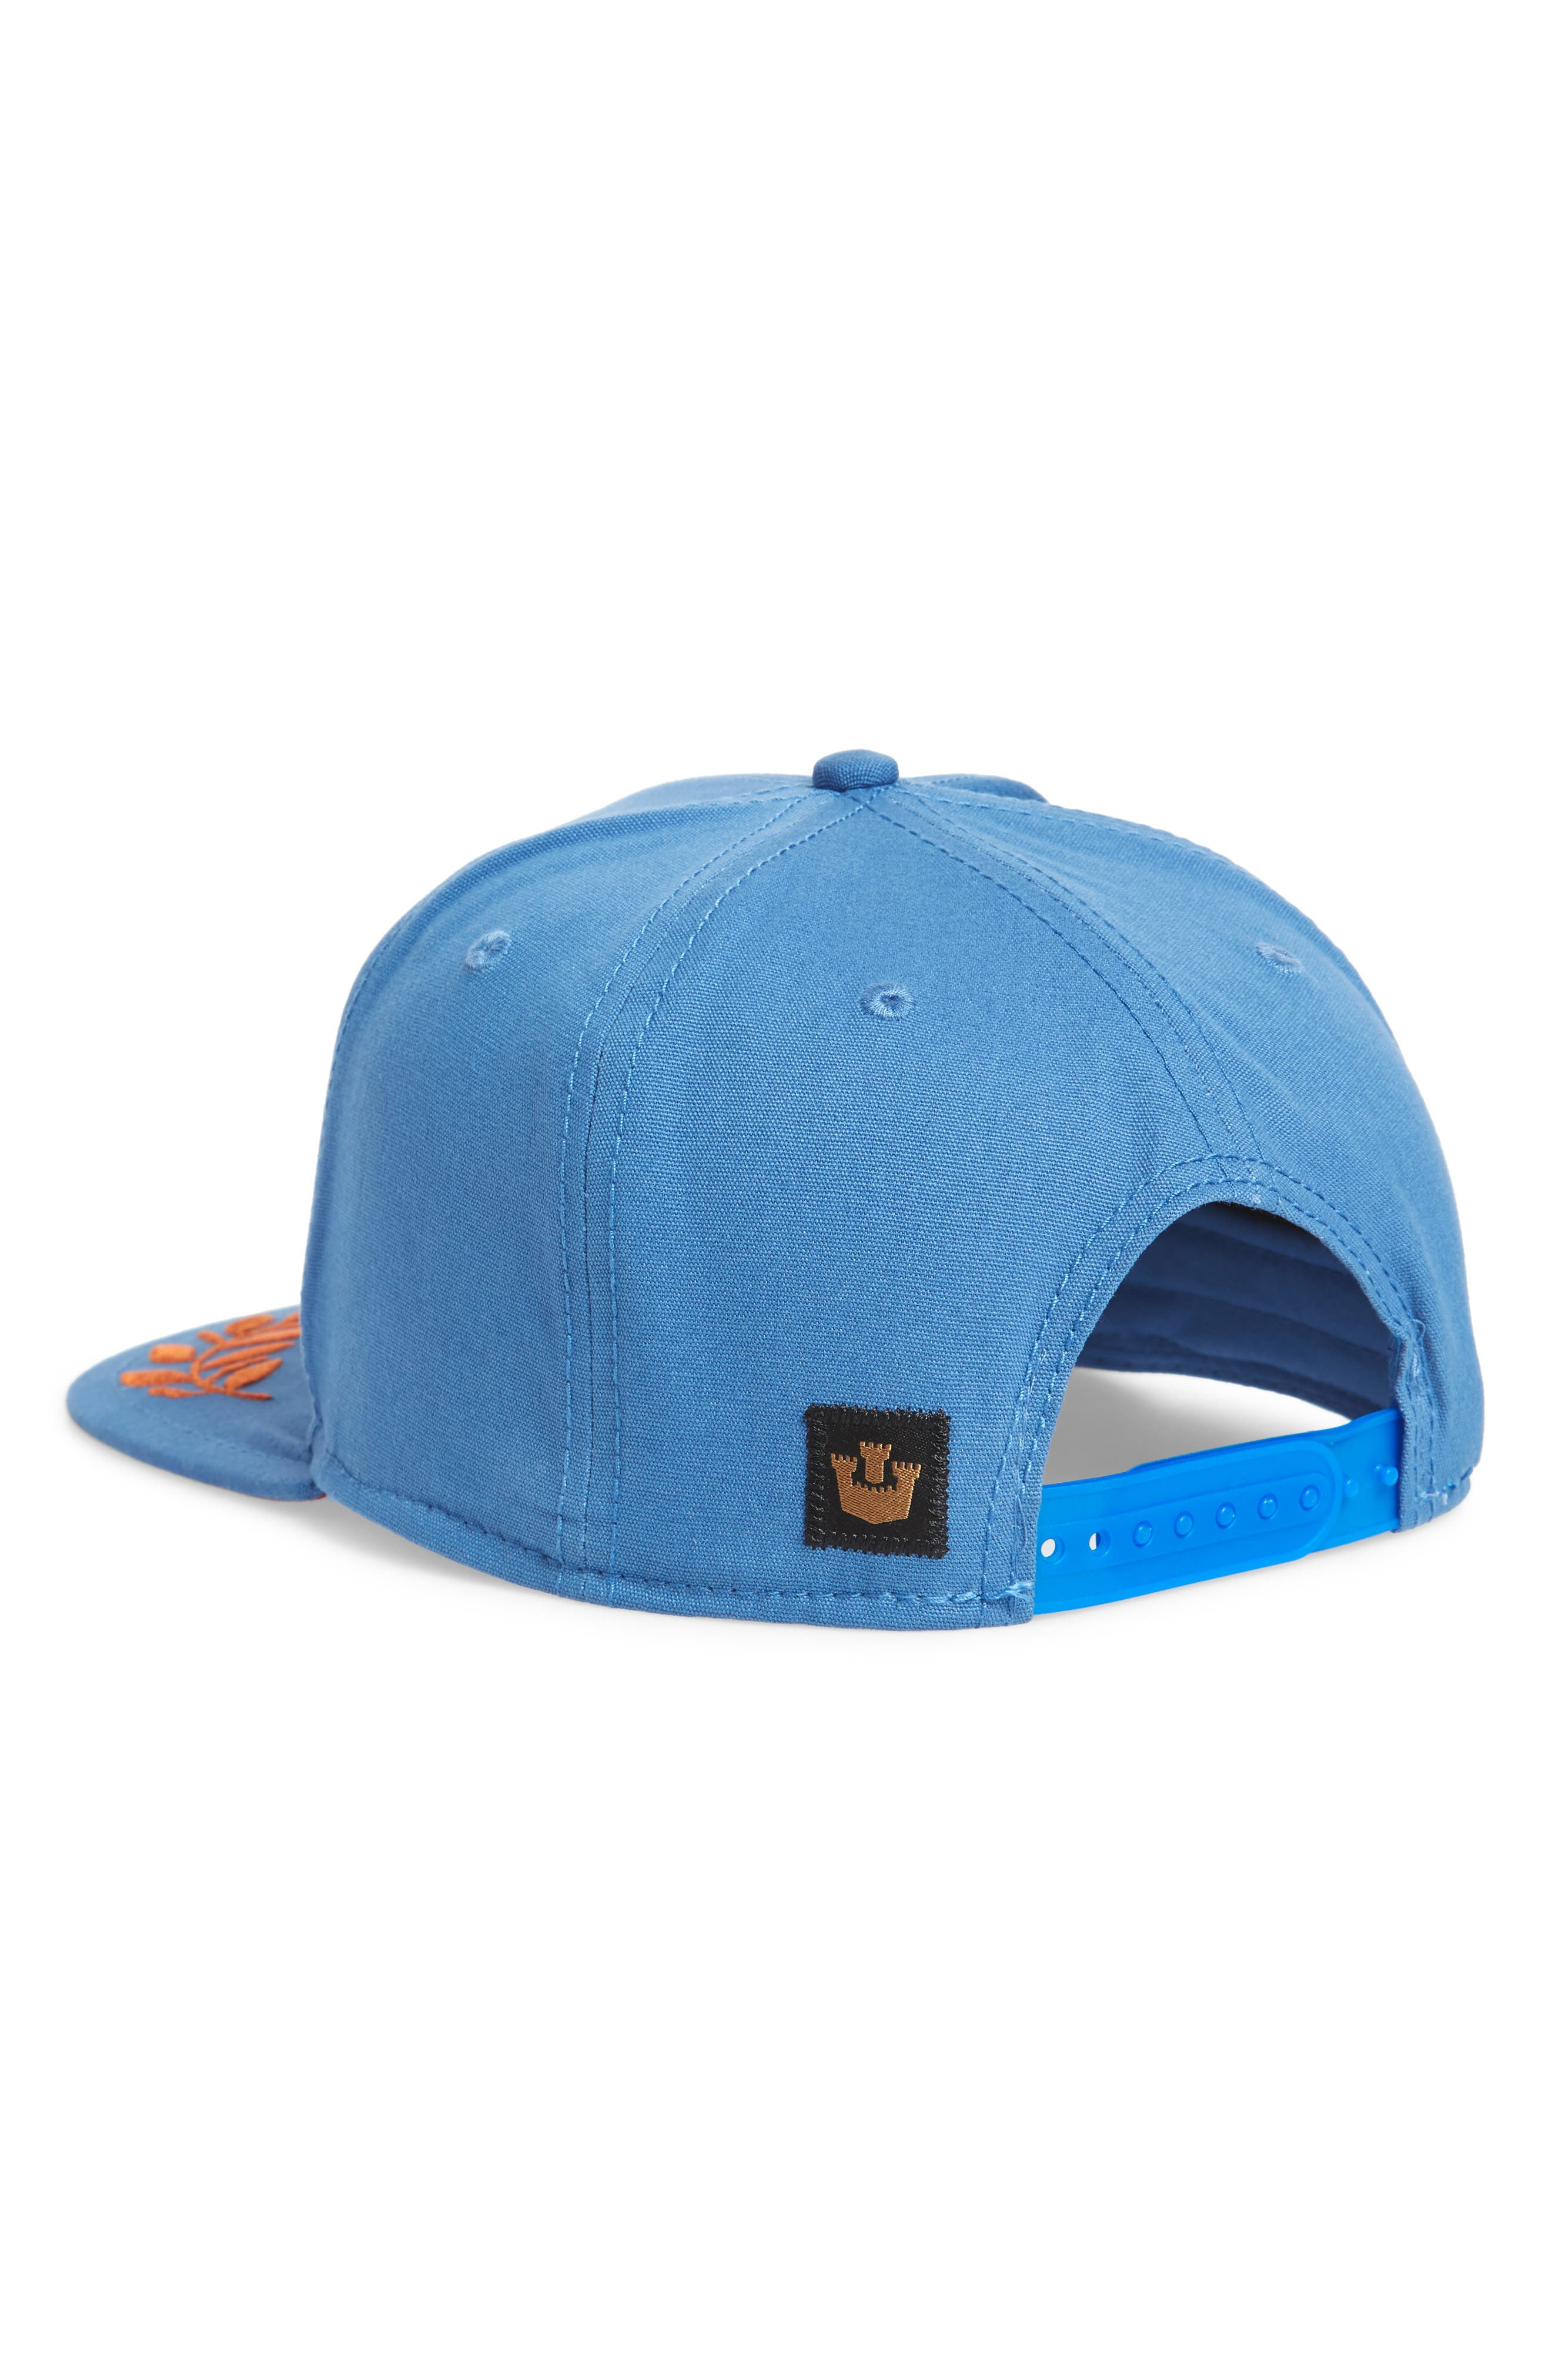 Island Bird Snapback Baseball Cap,                             Alternate thumbnail 2, color,                             Blue